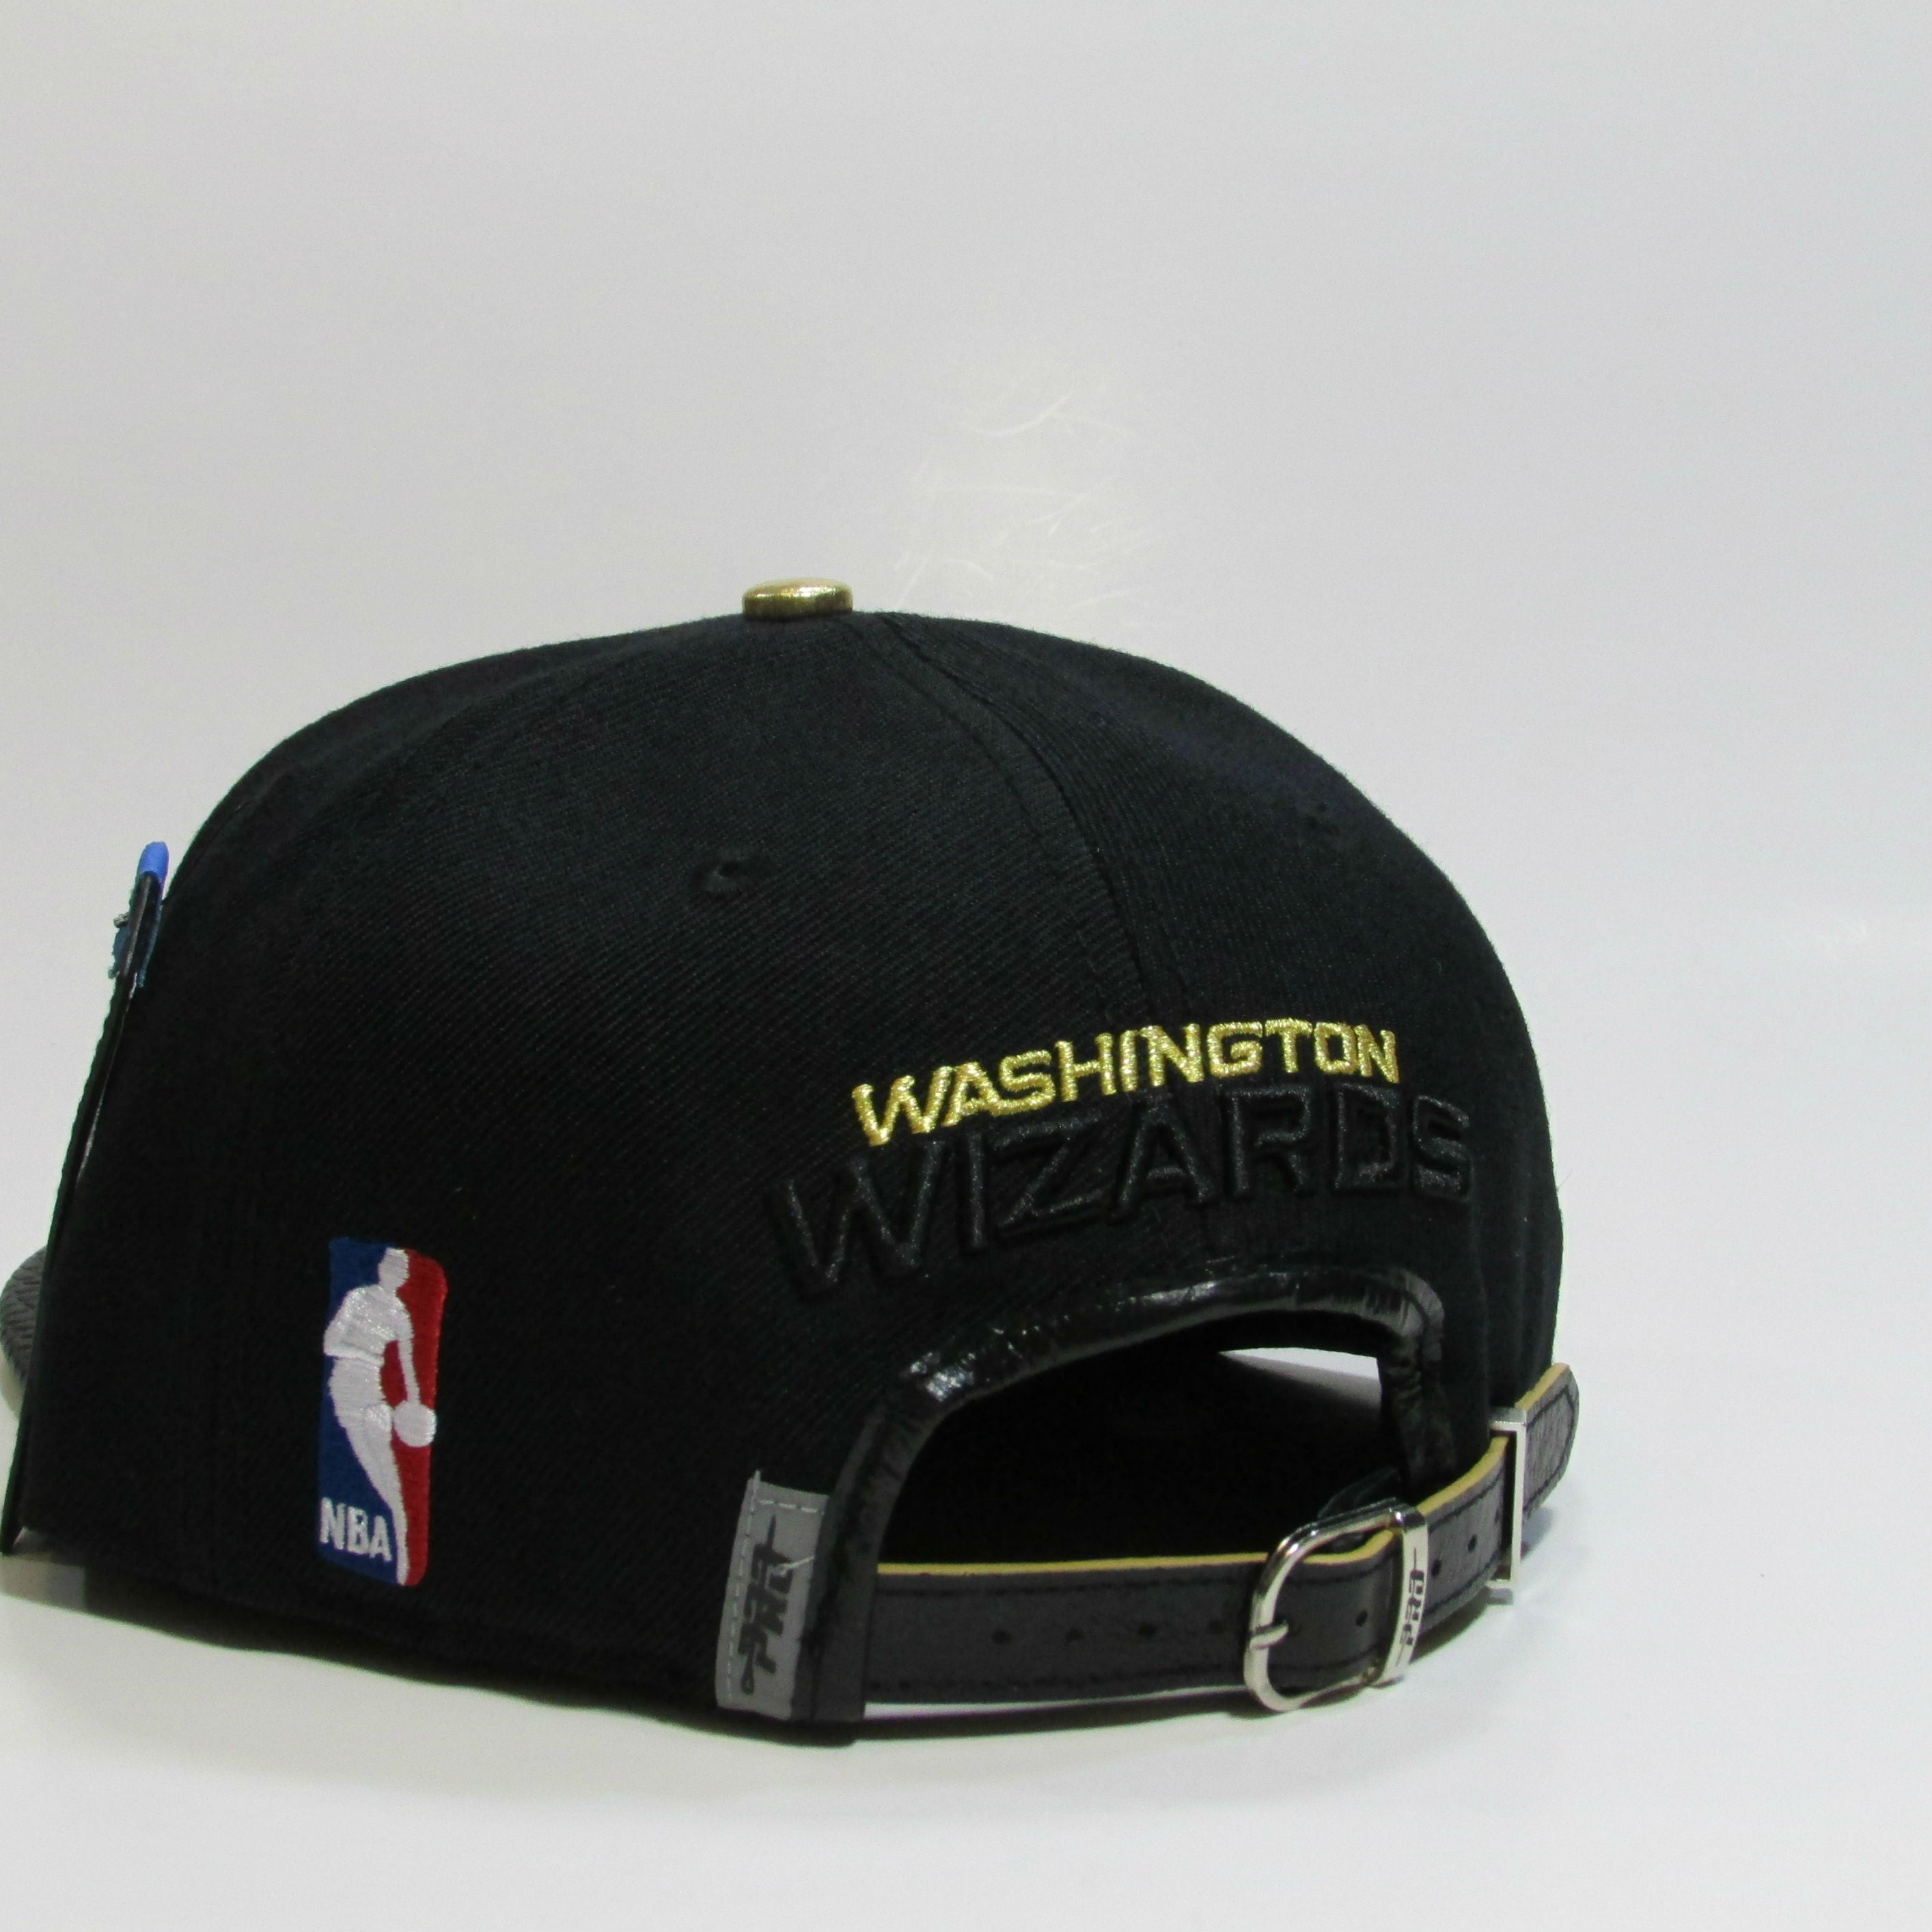 Washington Wizards Genuine Leather Snapback Hat by PRO STANDARD